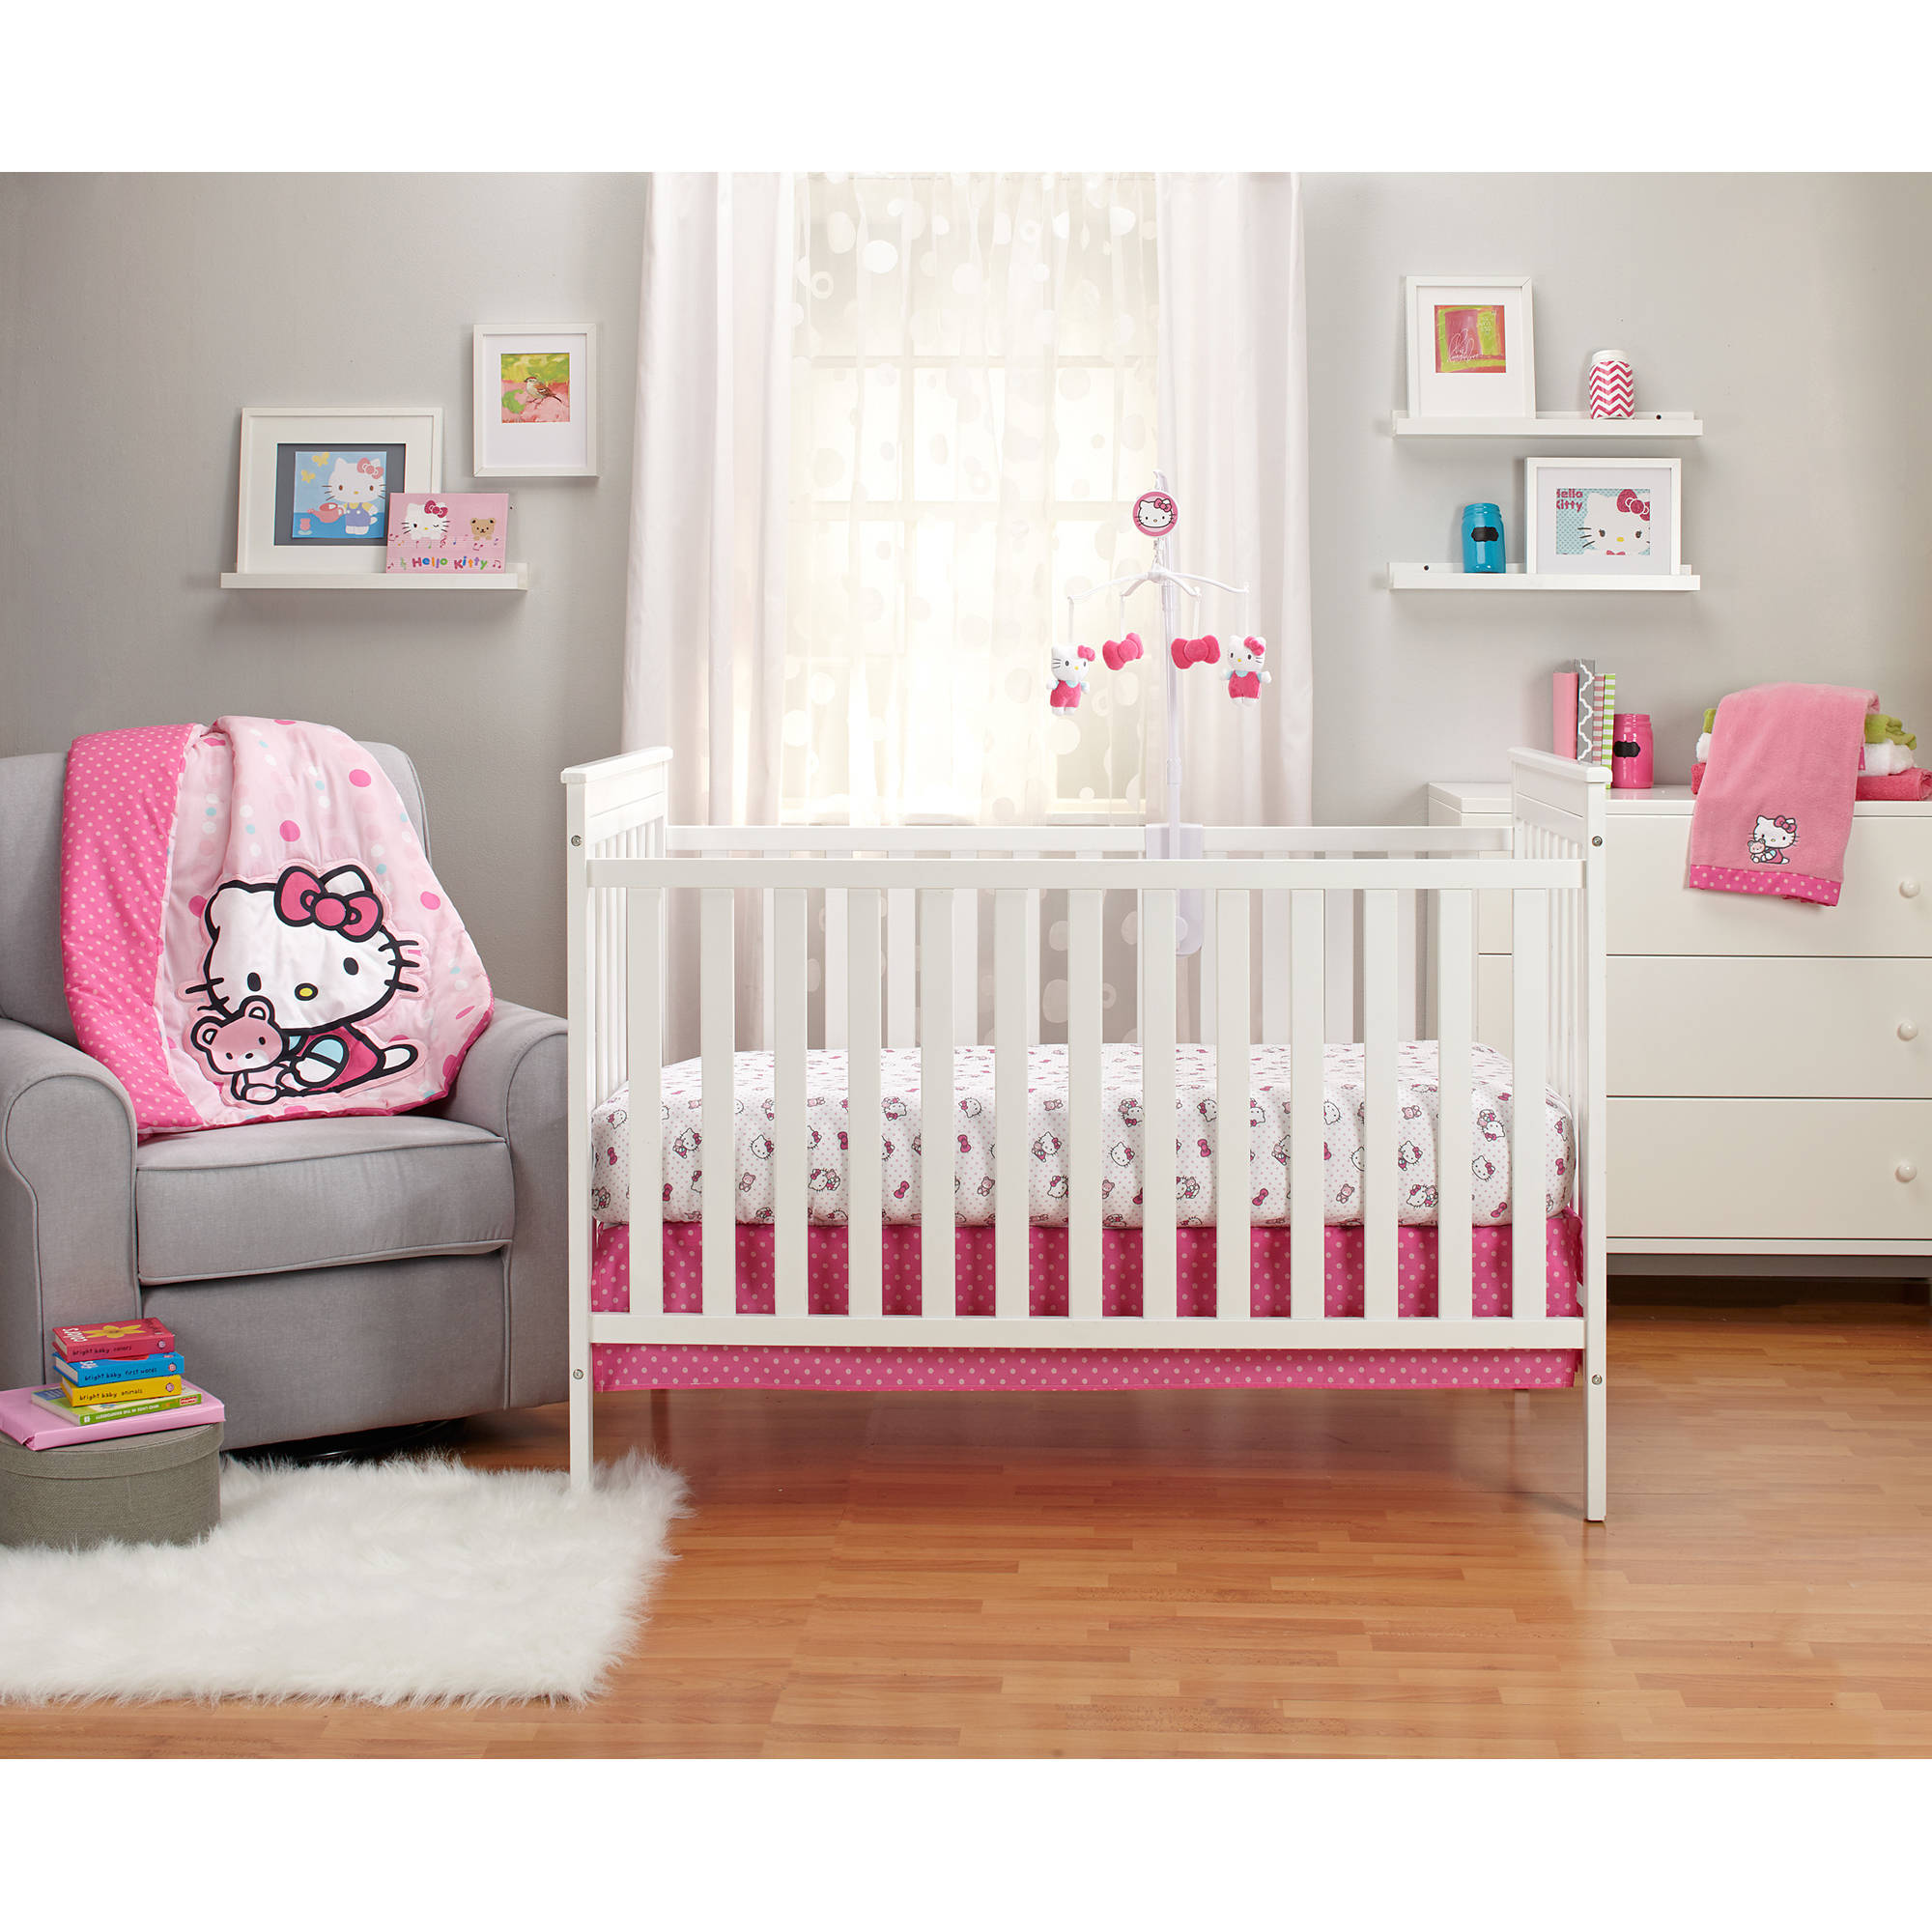 Hello Kitty Bedroom Bedding -